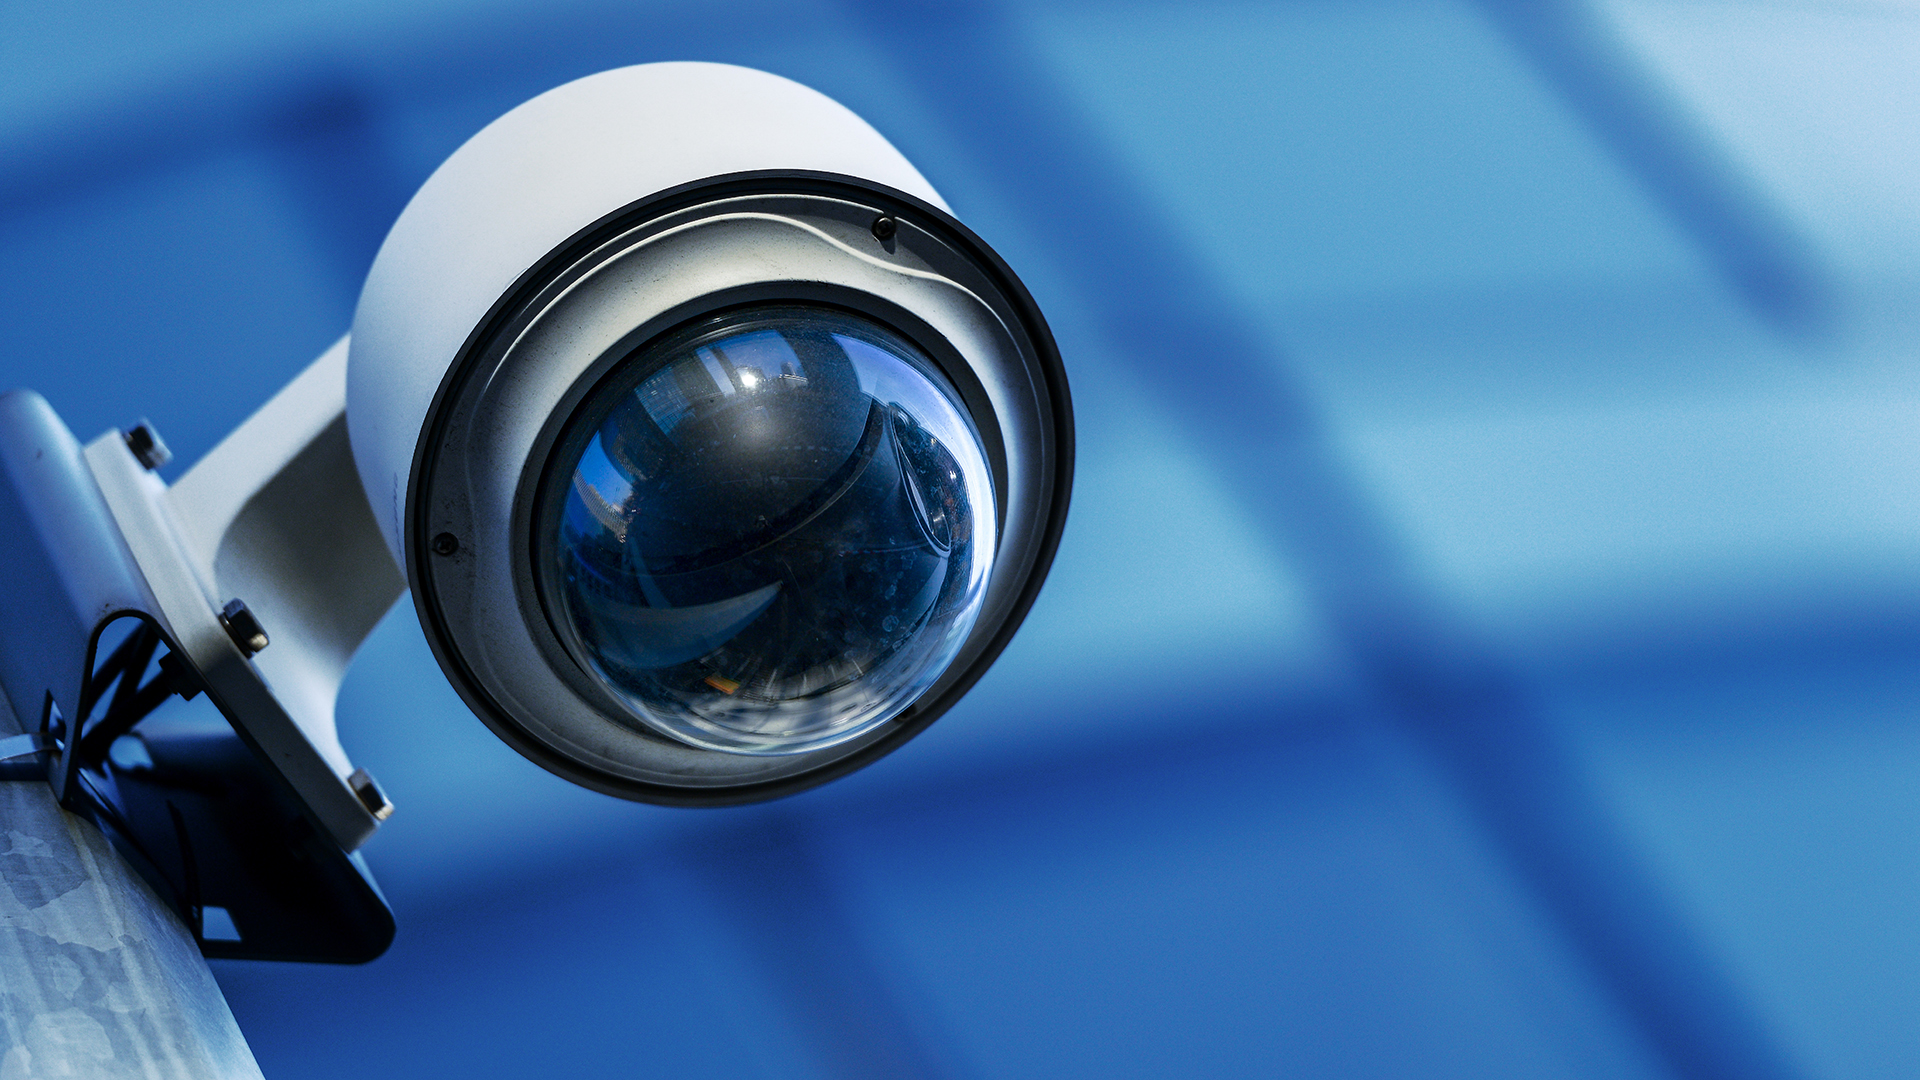 Security-Camera-Wallpaper-8.jpg